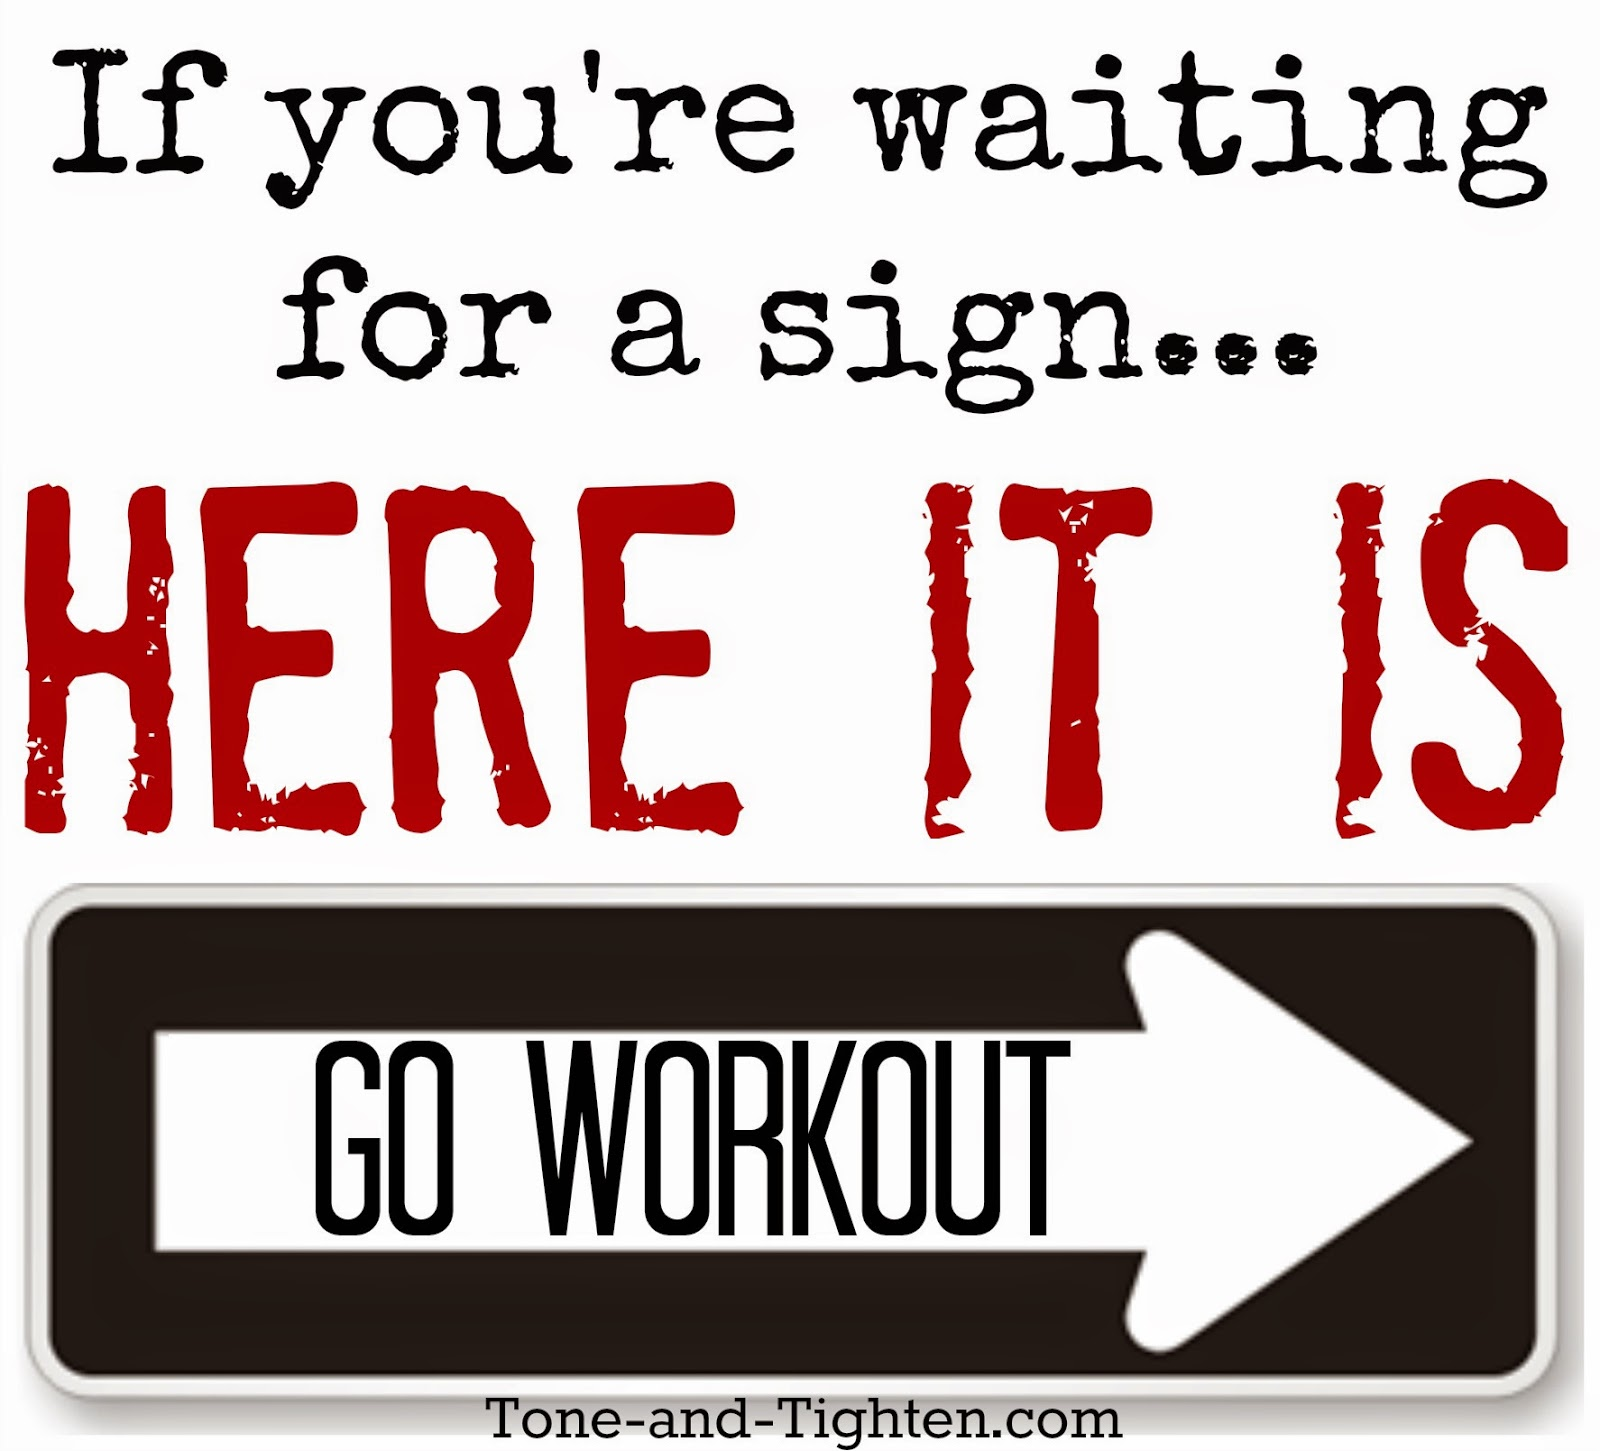 Fitness Motivation Gym Inspiration Quote Saying Meme Workout Tone And Tighten Waiting For A Sign